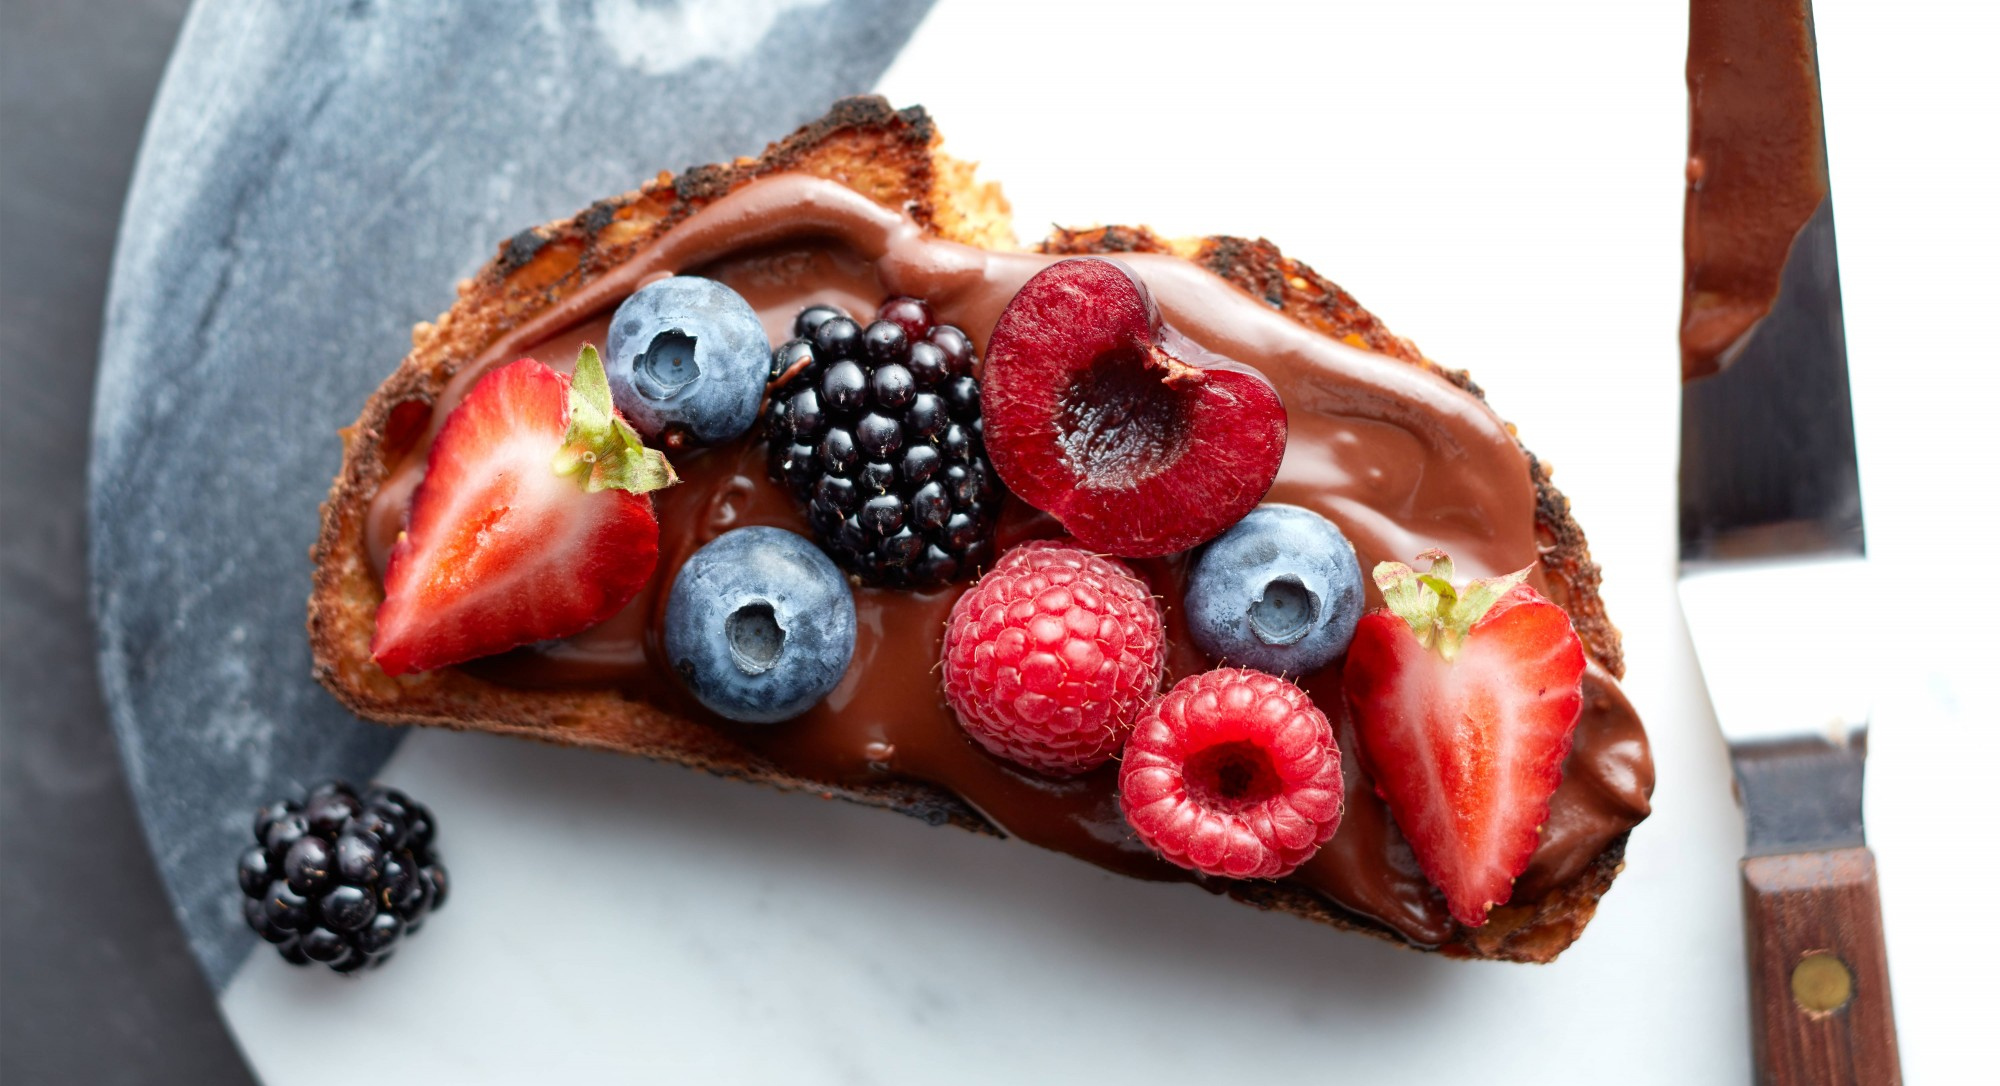 Grilled Chocolate-Hazelnut Berry Toast Recipe